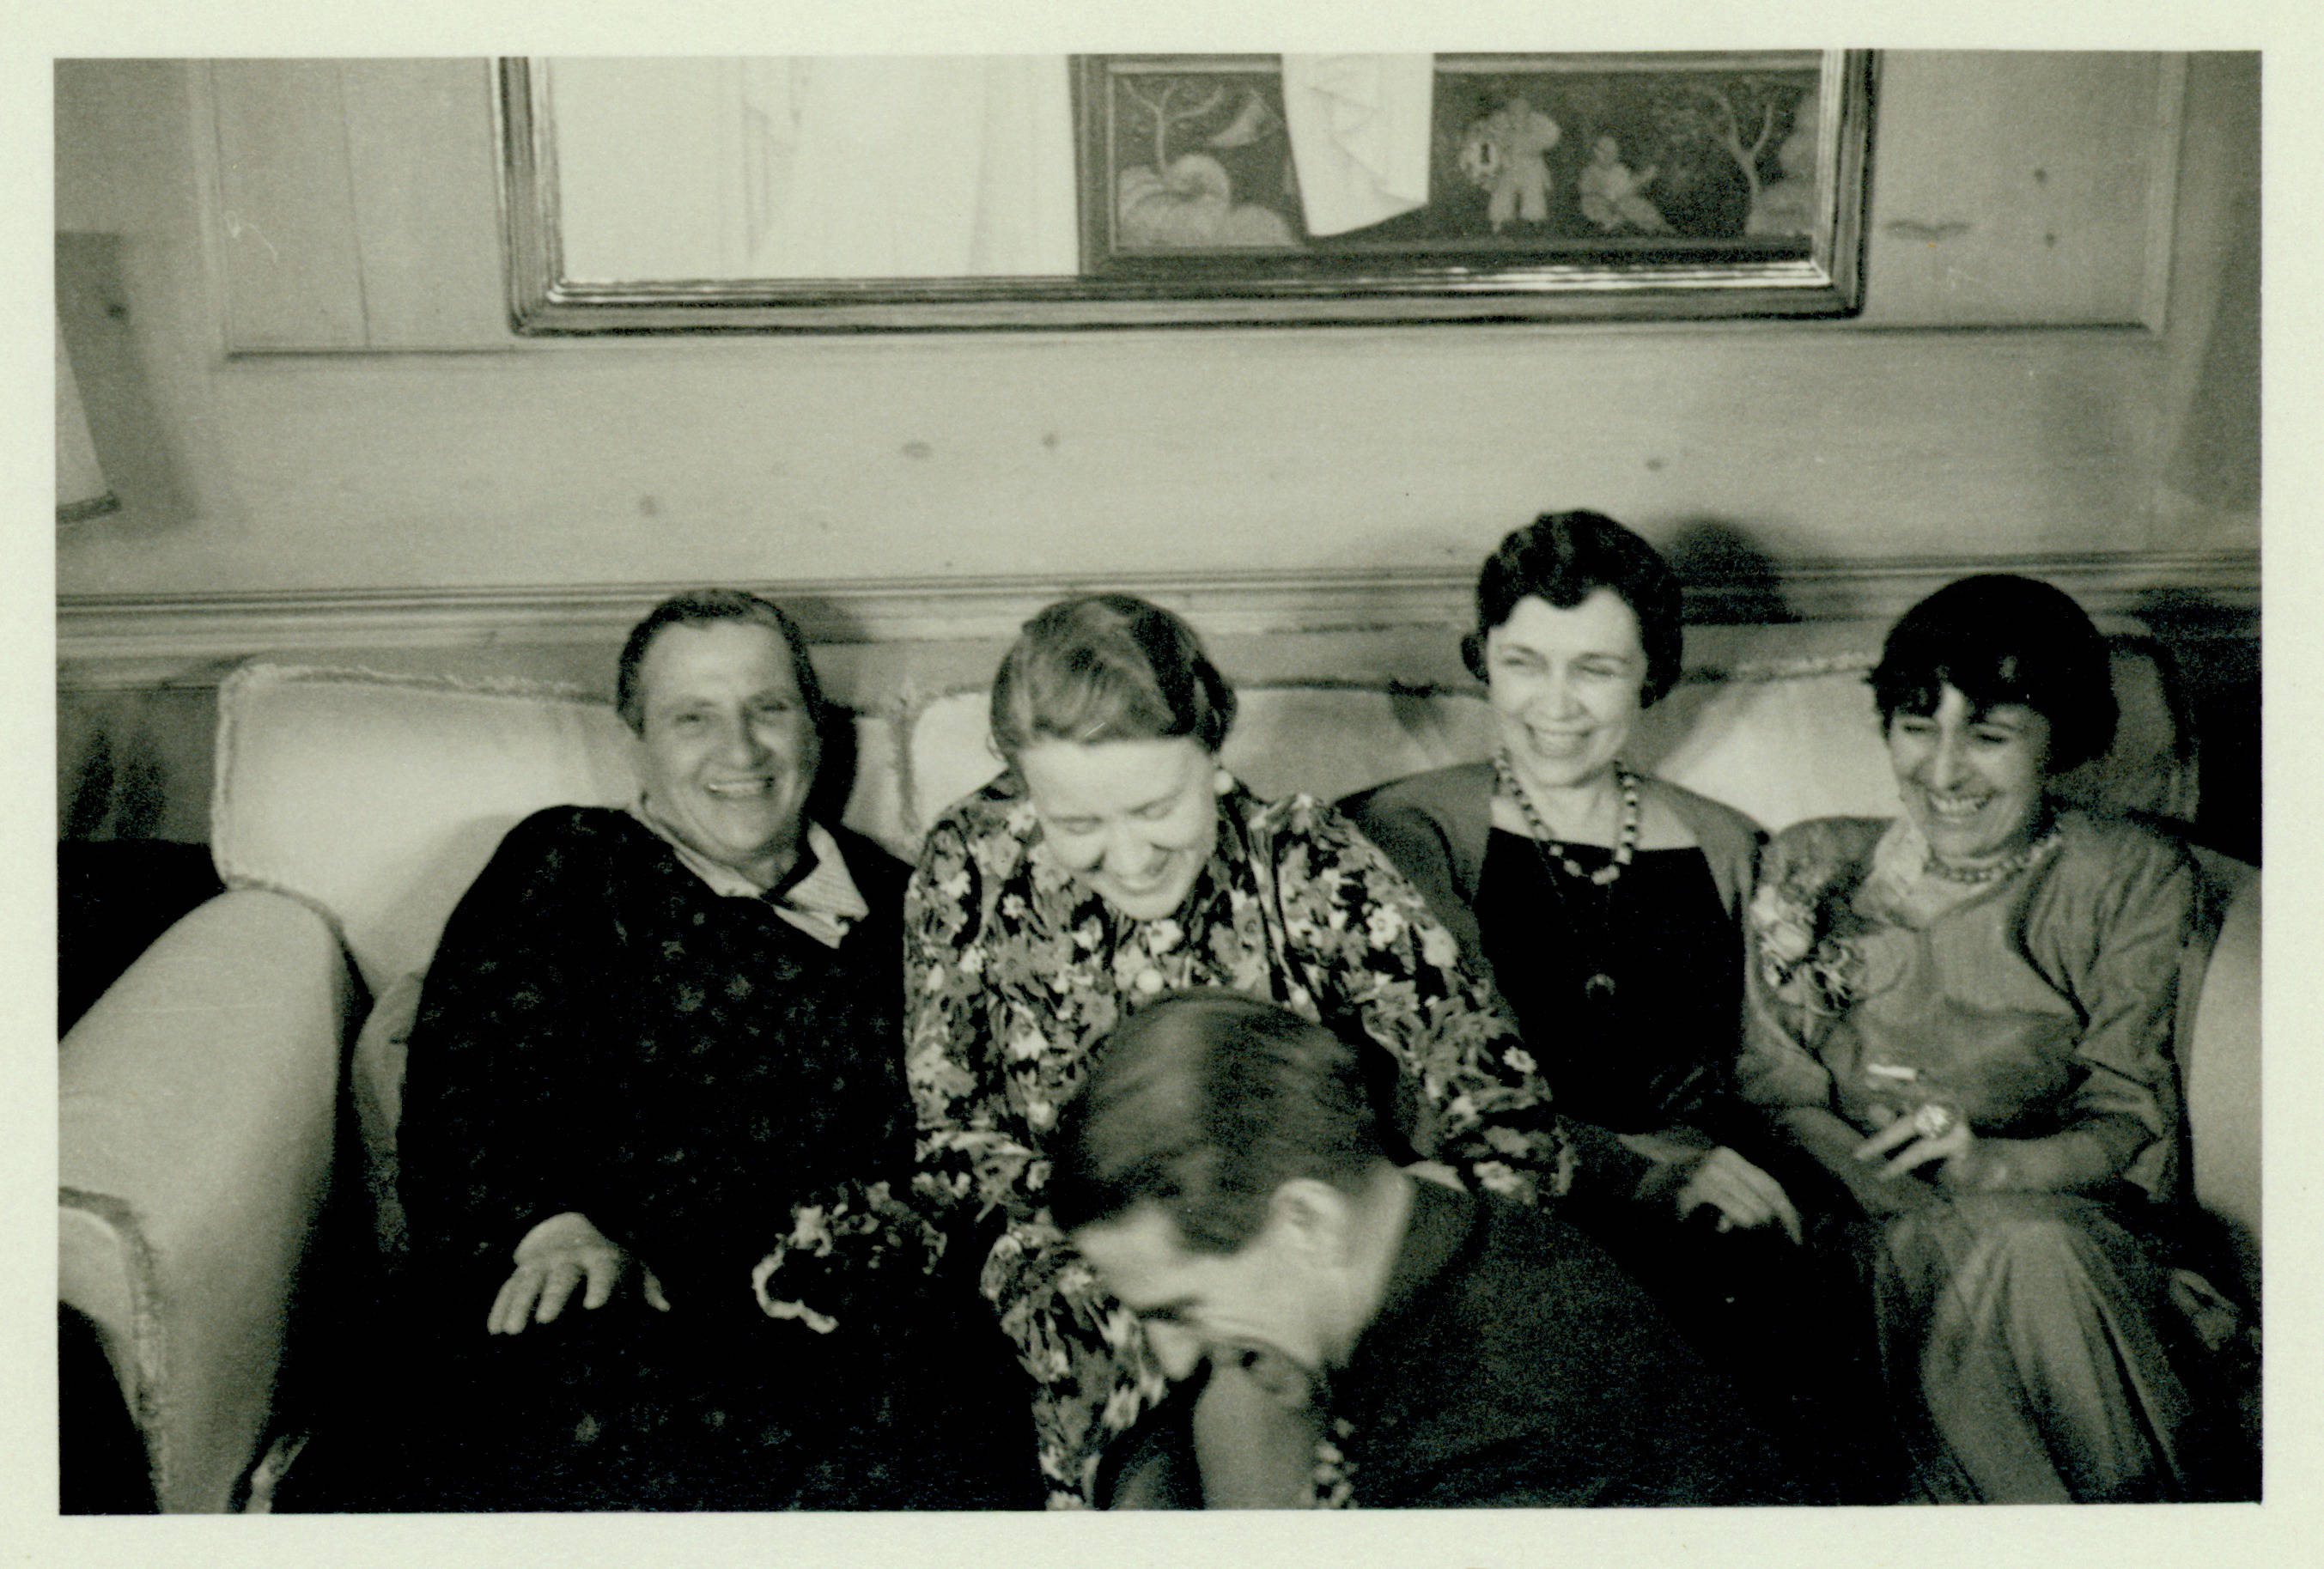 Gertrude Stein, Fanny Butcher, Bobsy Goodspeed and Alice Toklas. A dinner party in the home of Bobsy Goodspeed, 1934. Photographer unknown.